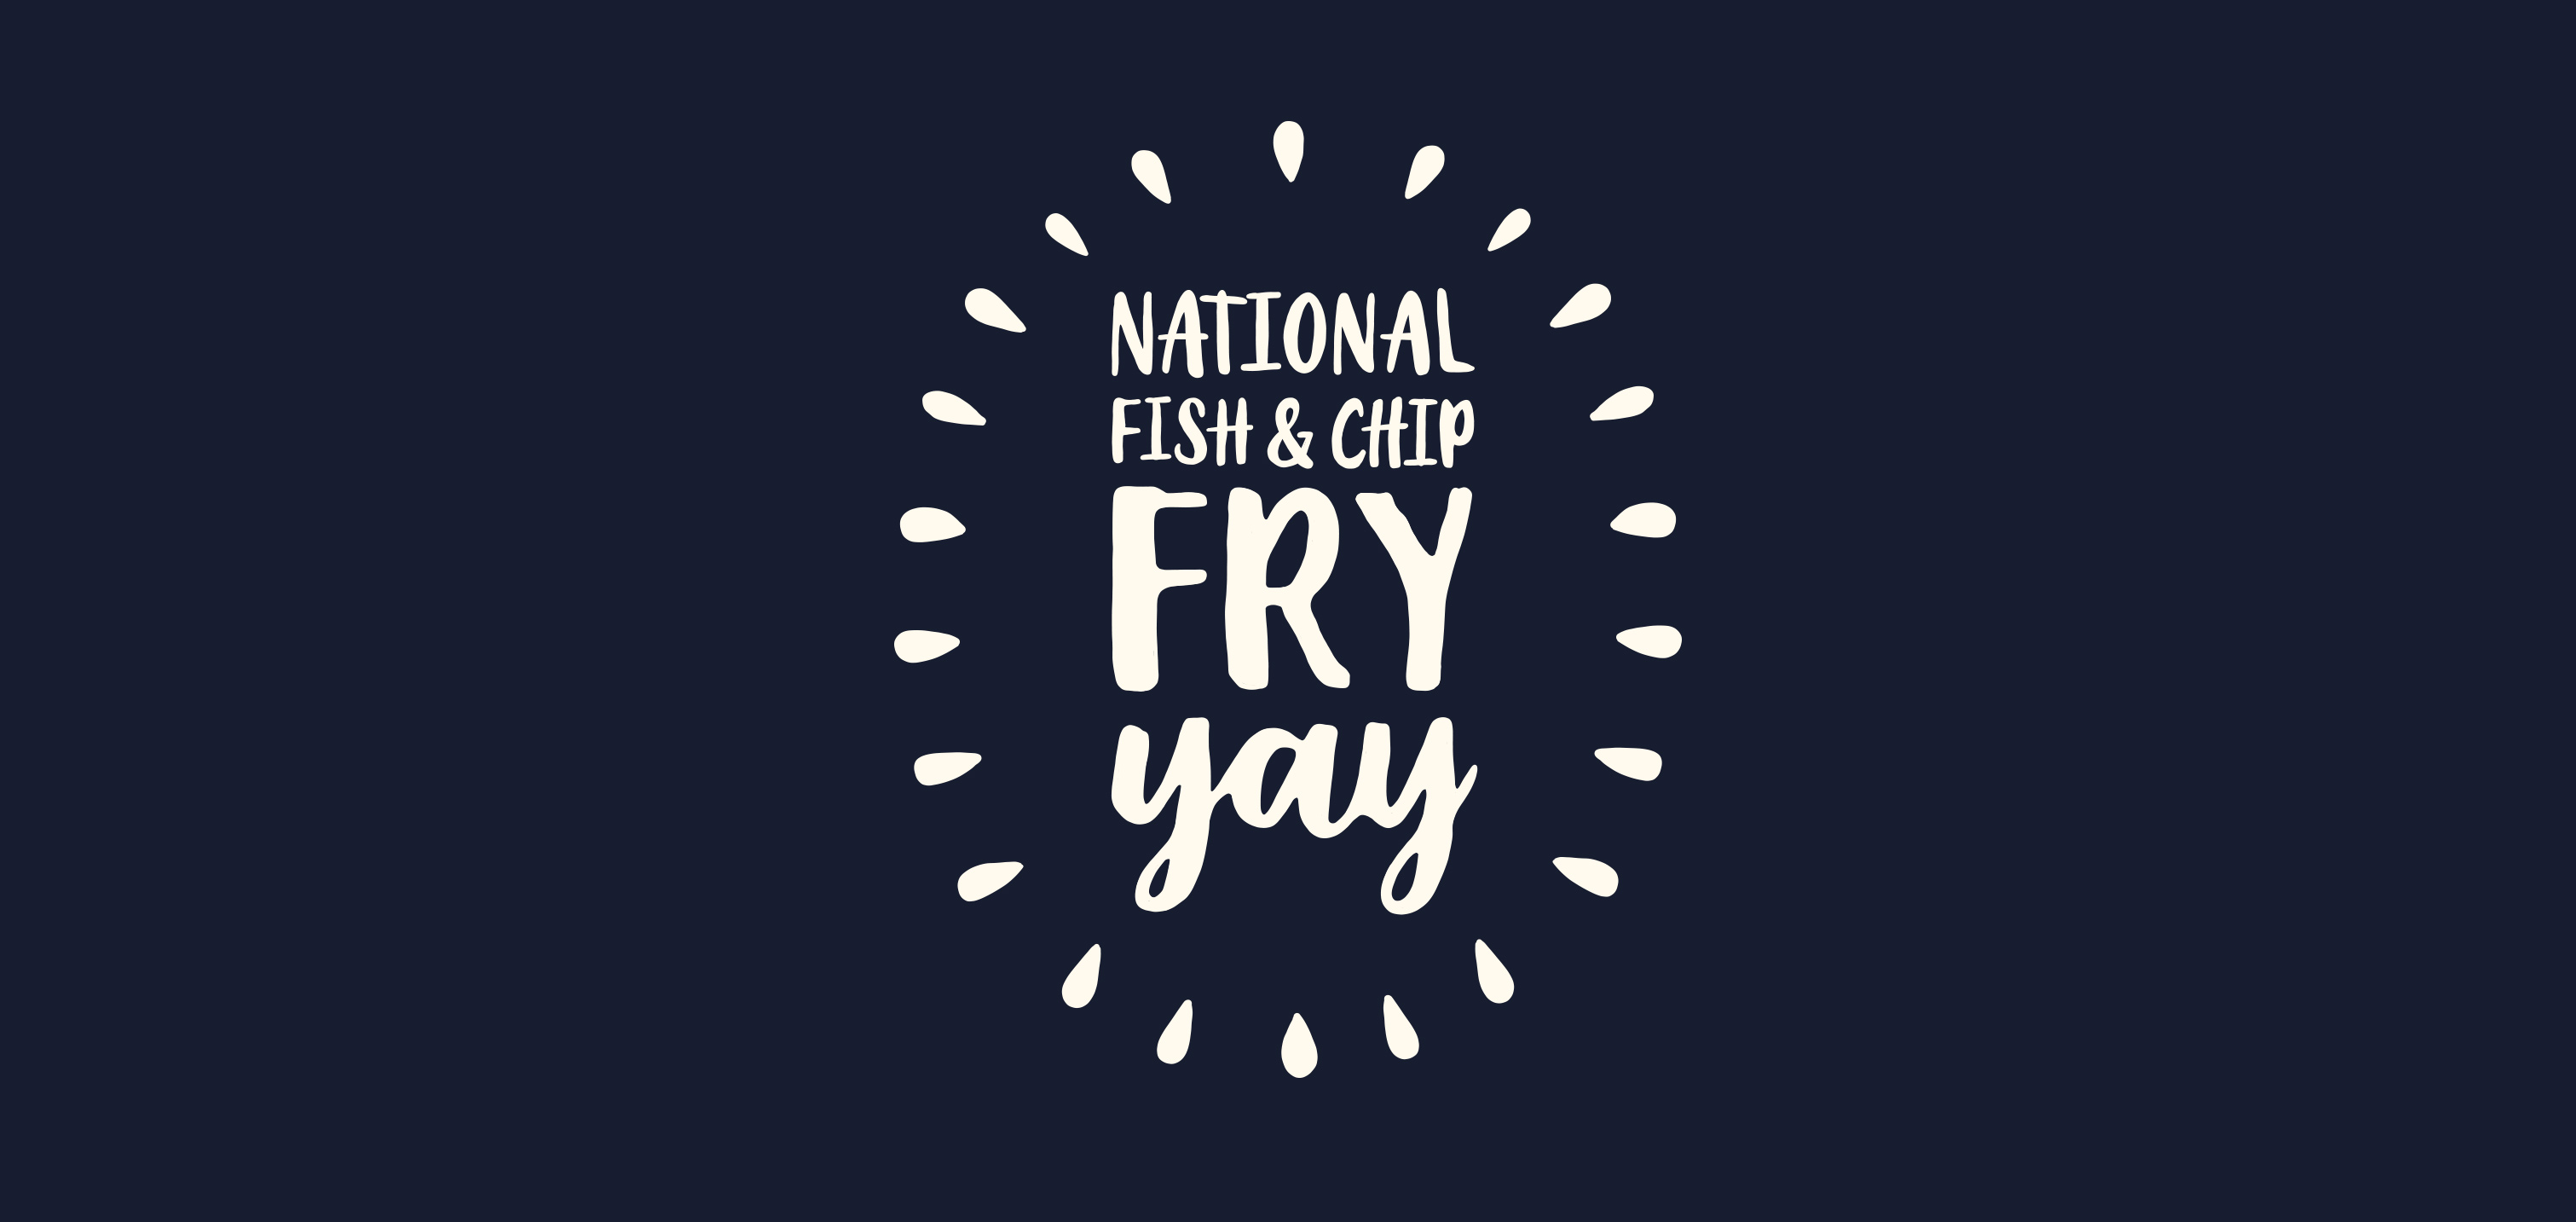 National Fish and Chip day Fry-yay